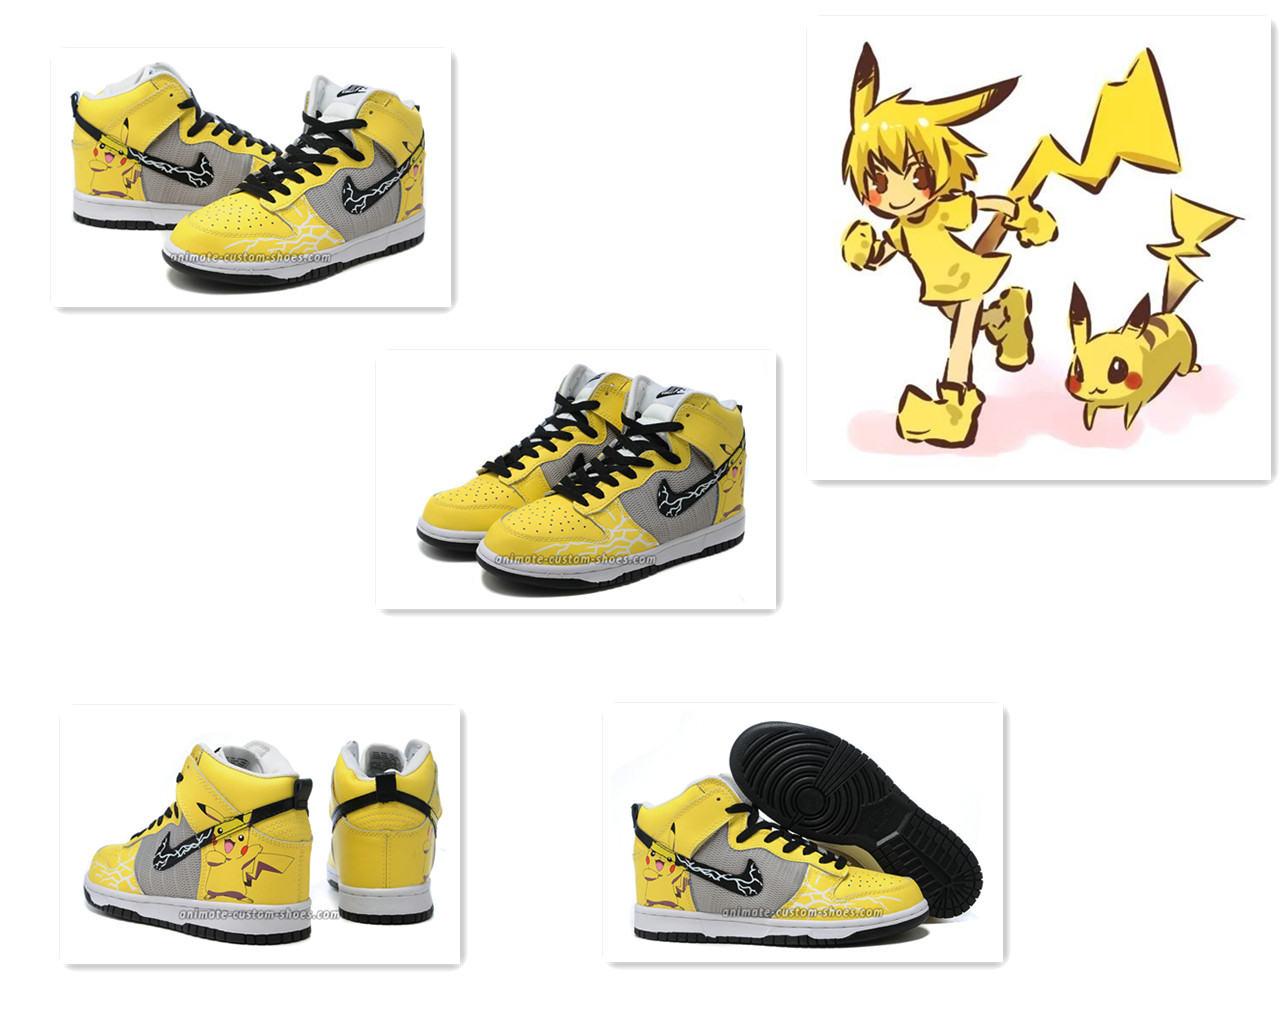 new style d4c59 e6c56 Pokemon Pikachu Customized Sneakers Nike Dunk High Top